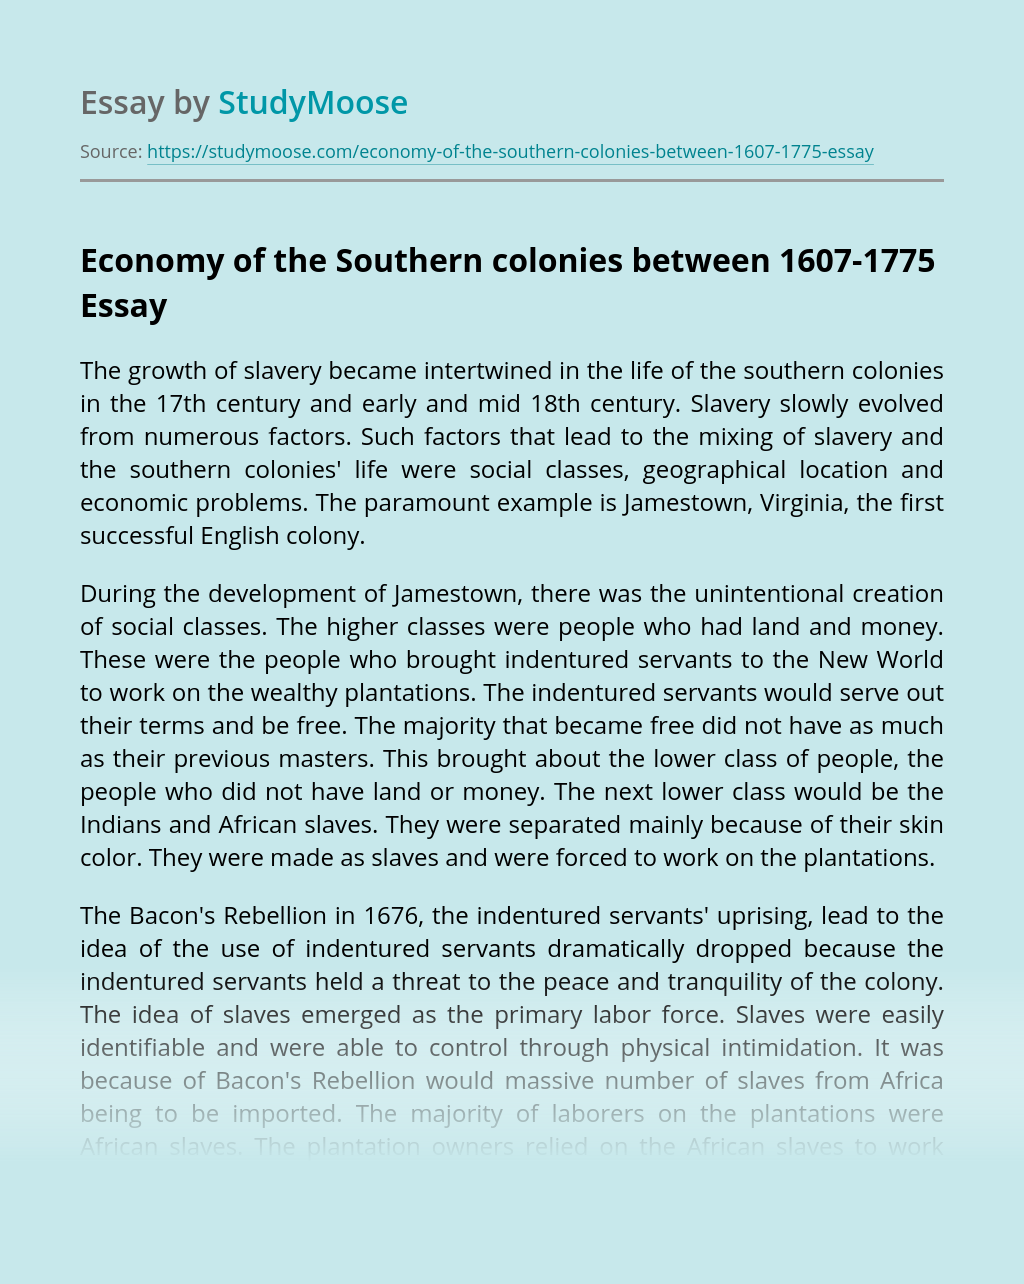 Economy of the Southern colonies between 1607-1775